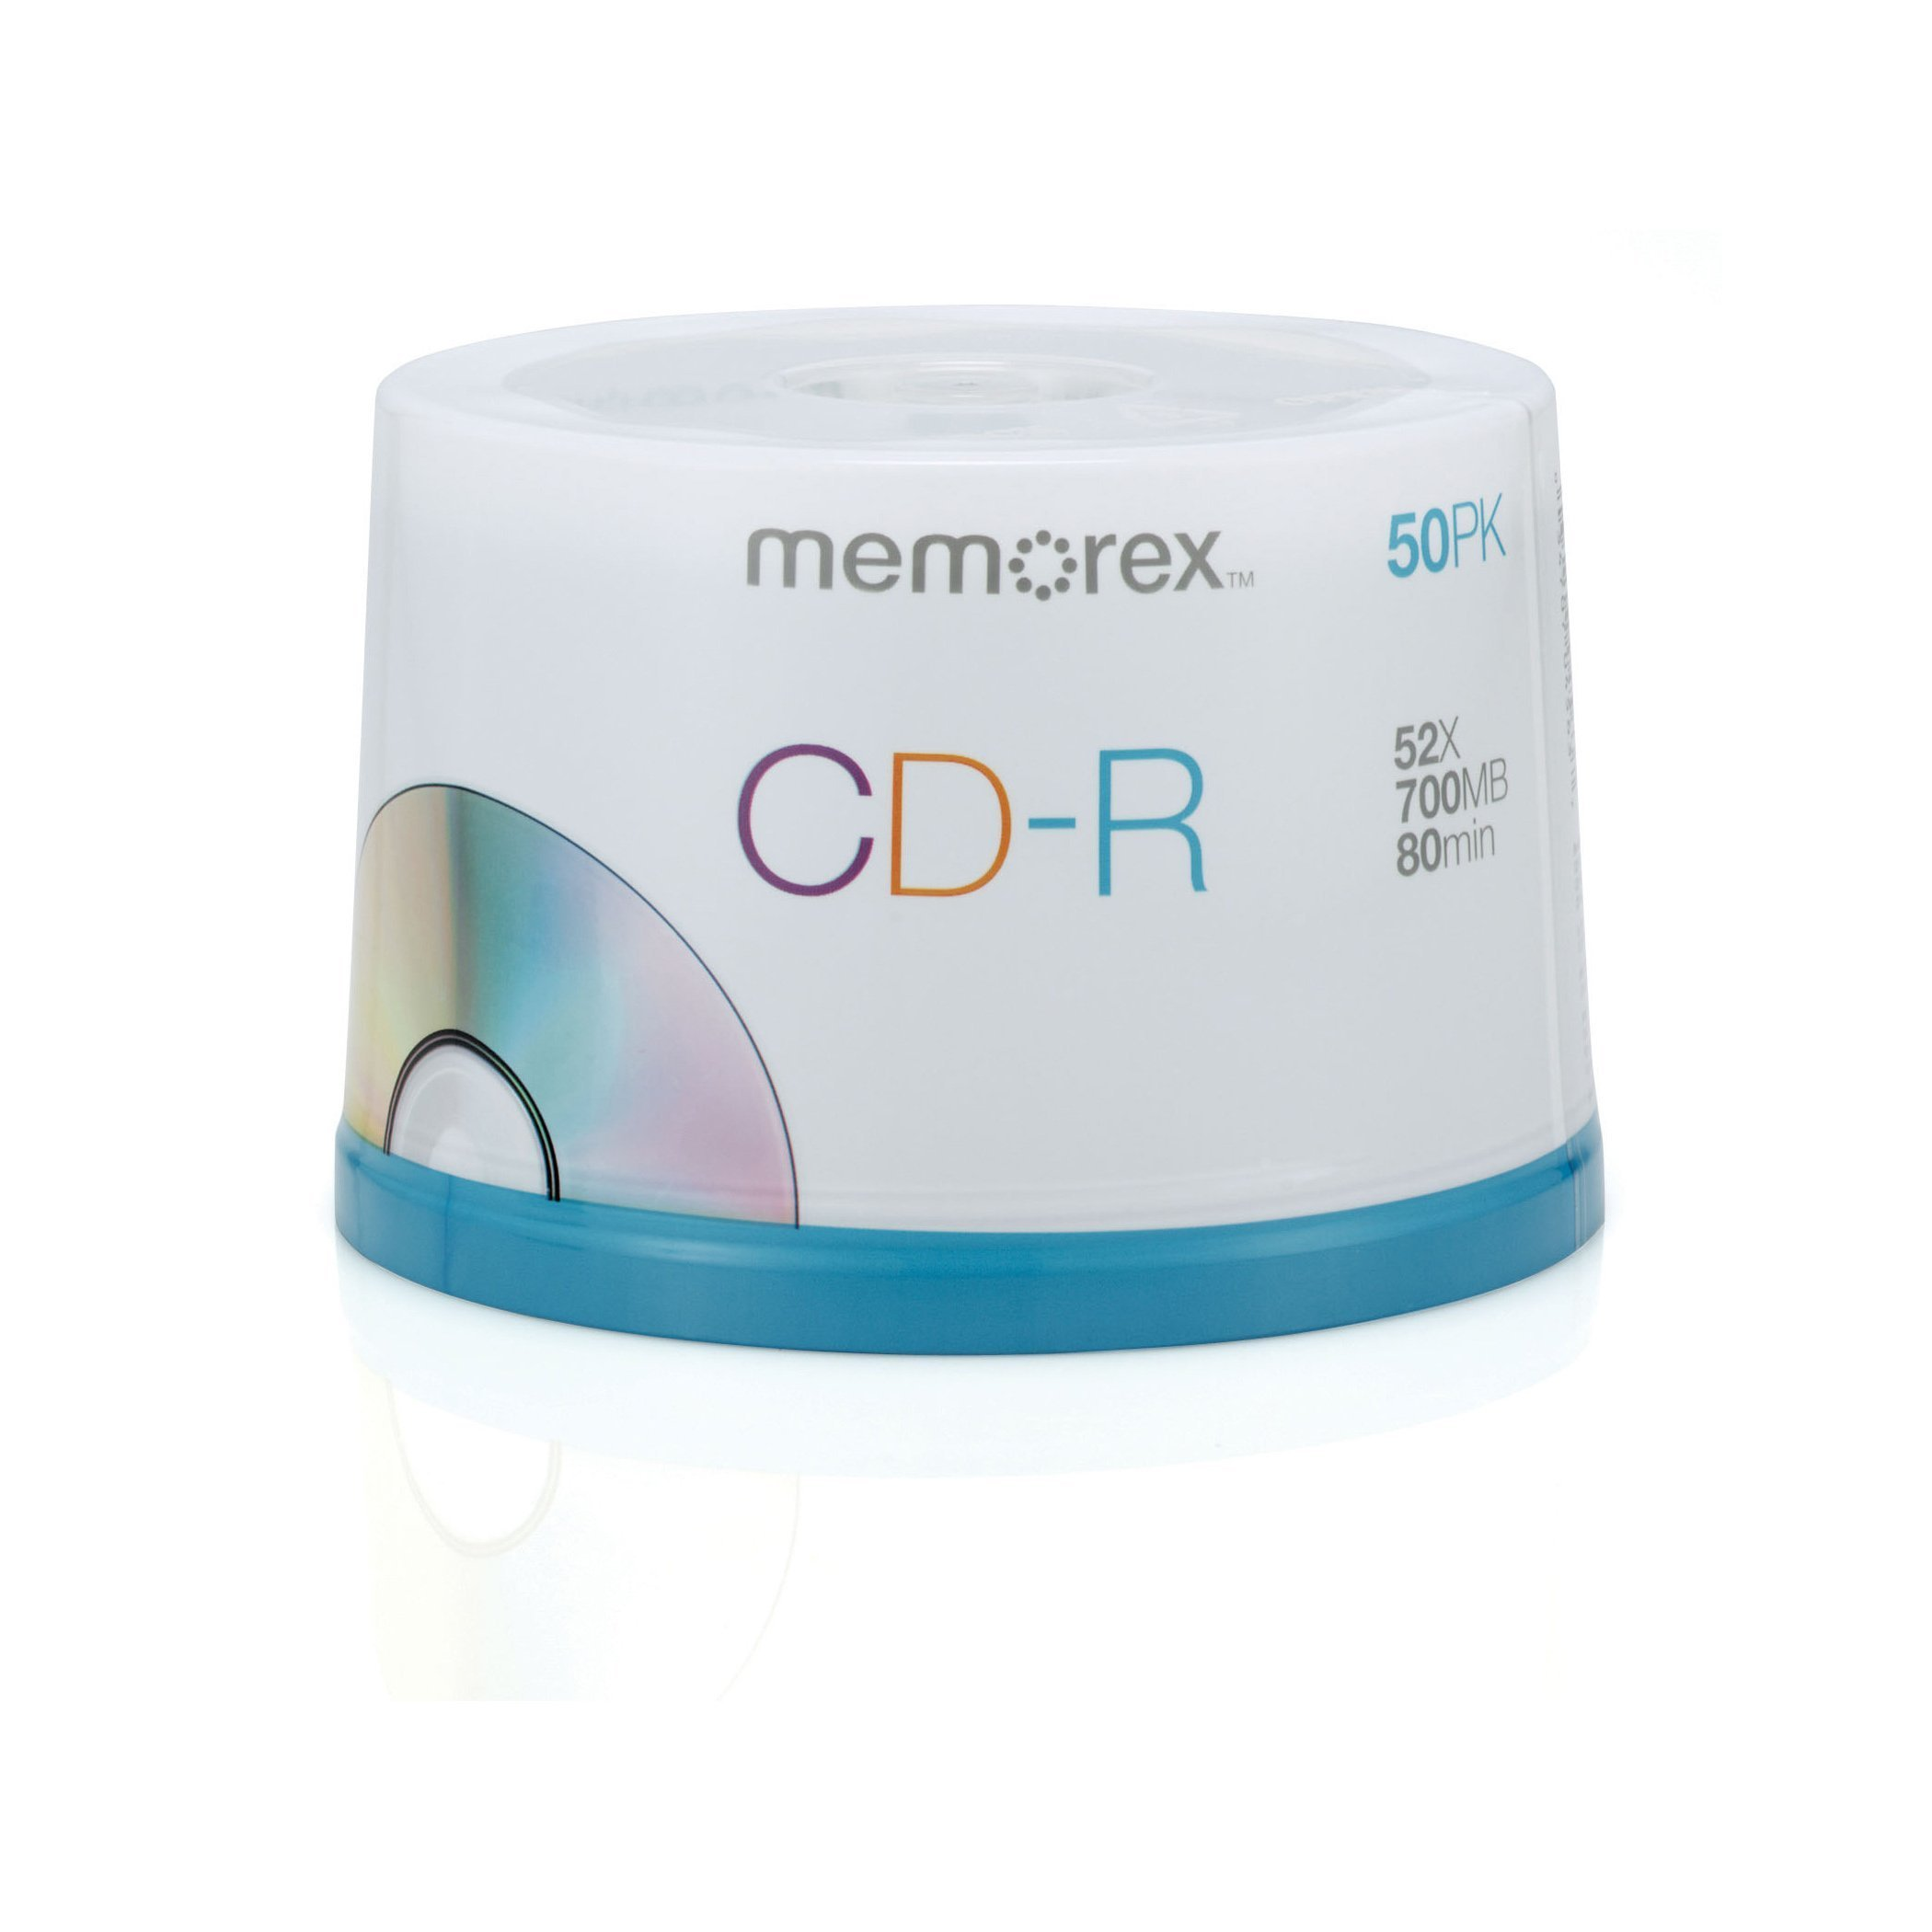 Memorex 700MB/80-Minute 52x Data CD-R Media 50-Pack Spindle by Memorex